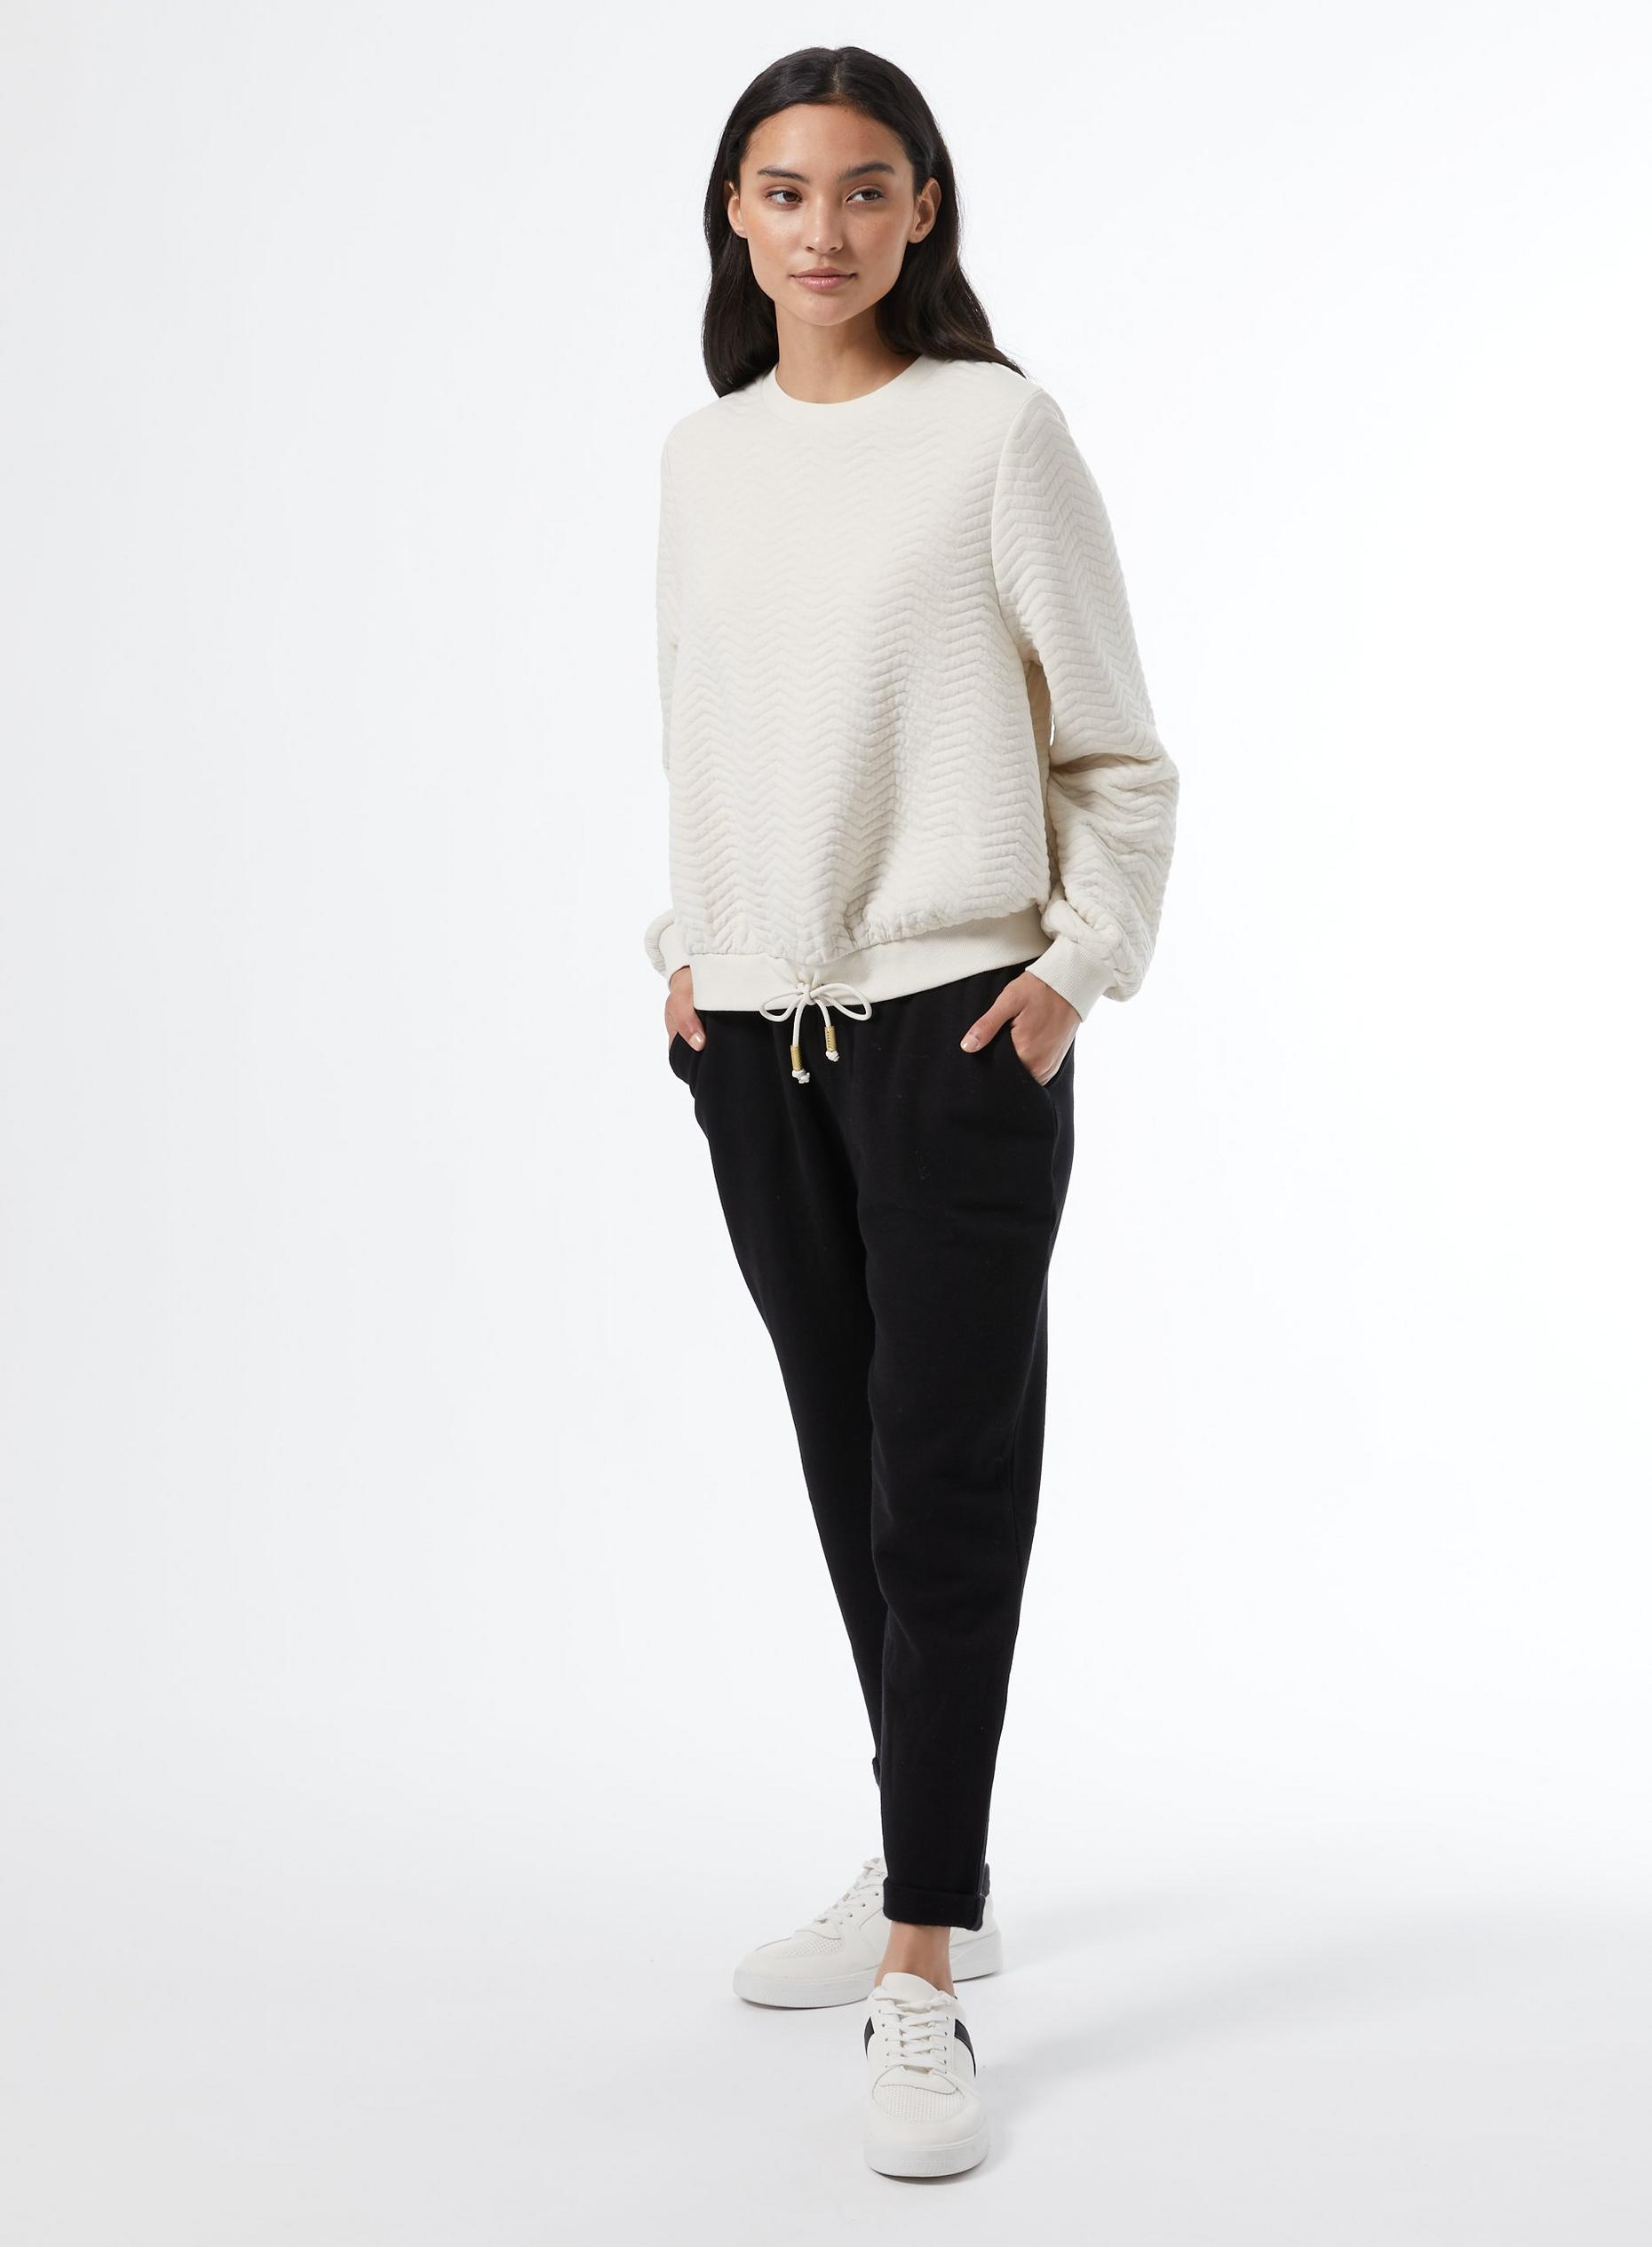 Petite Cream Jacquard Sweat Top